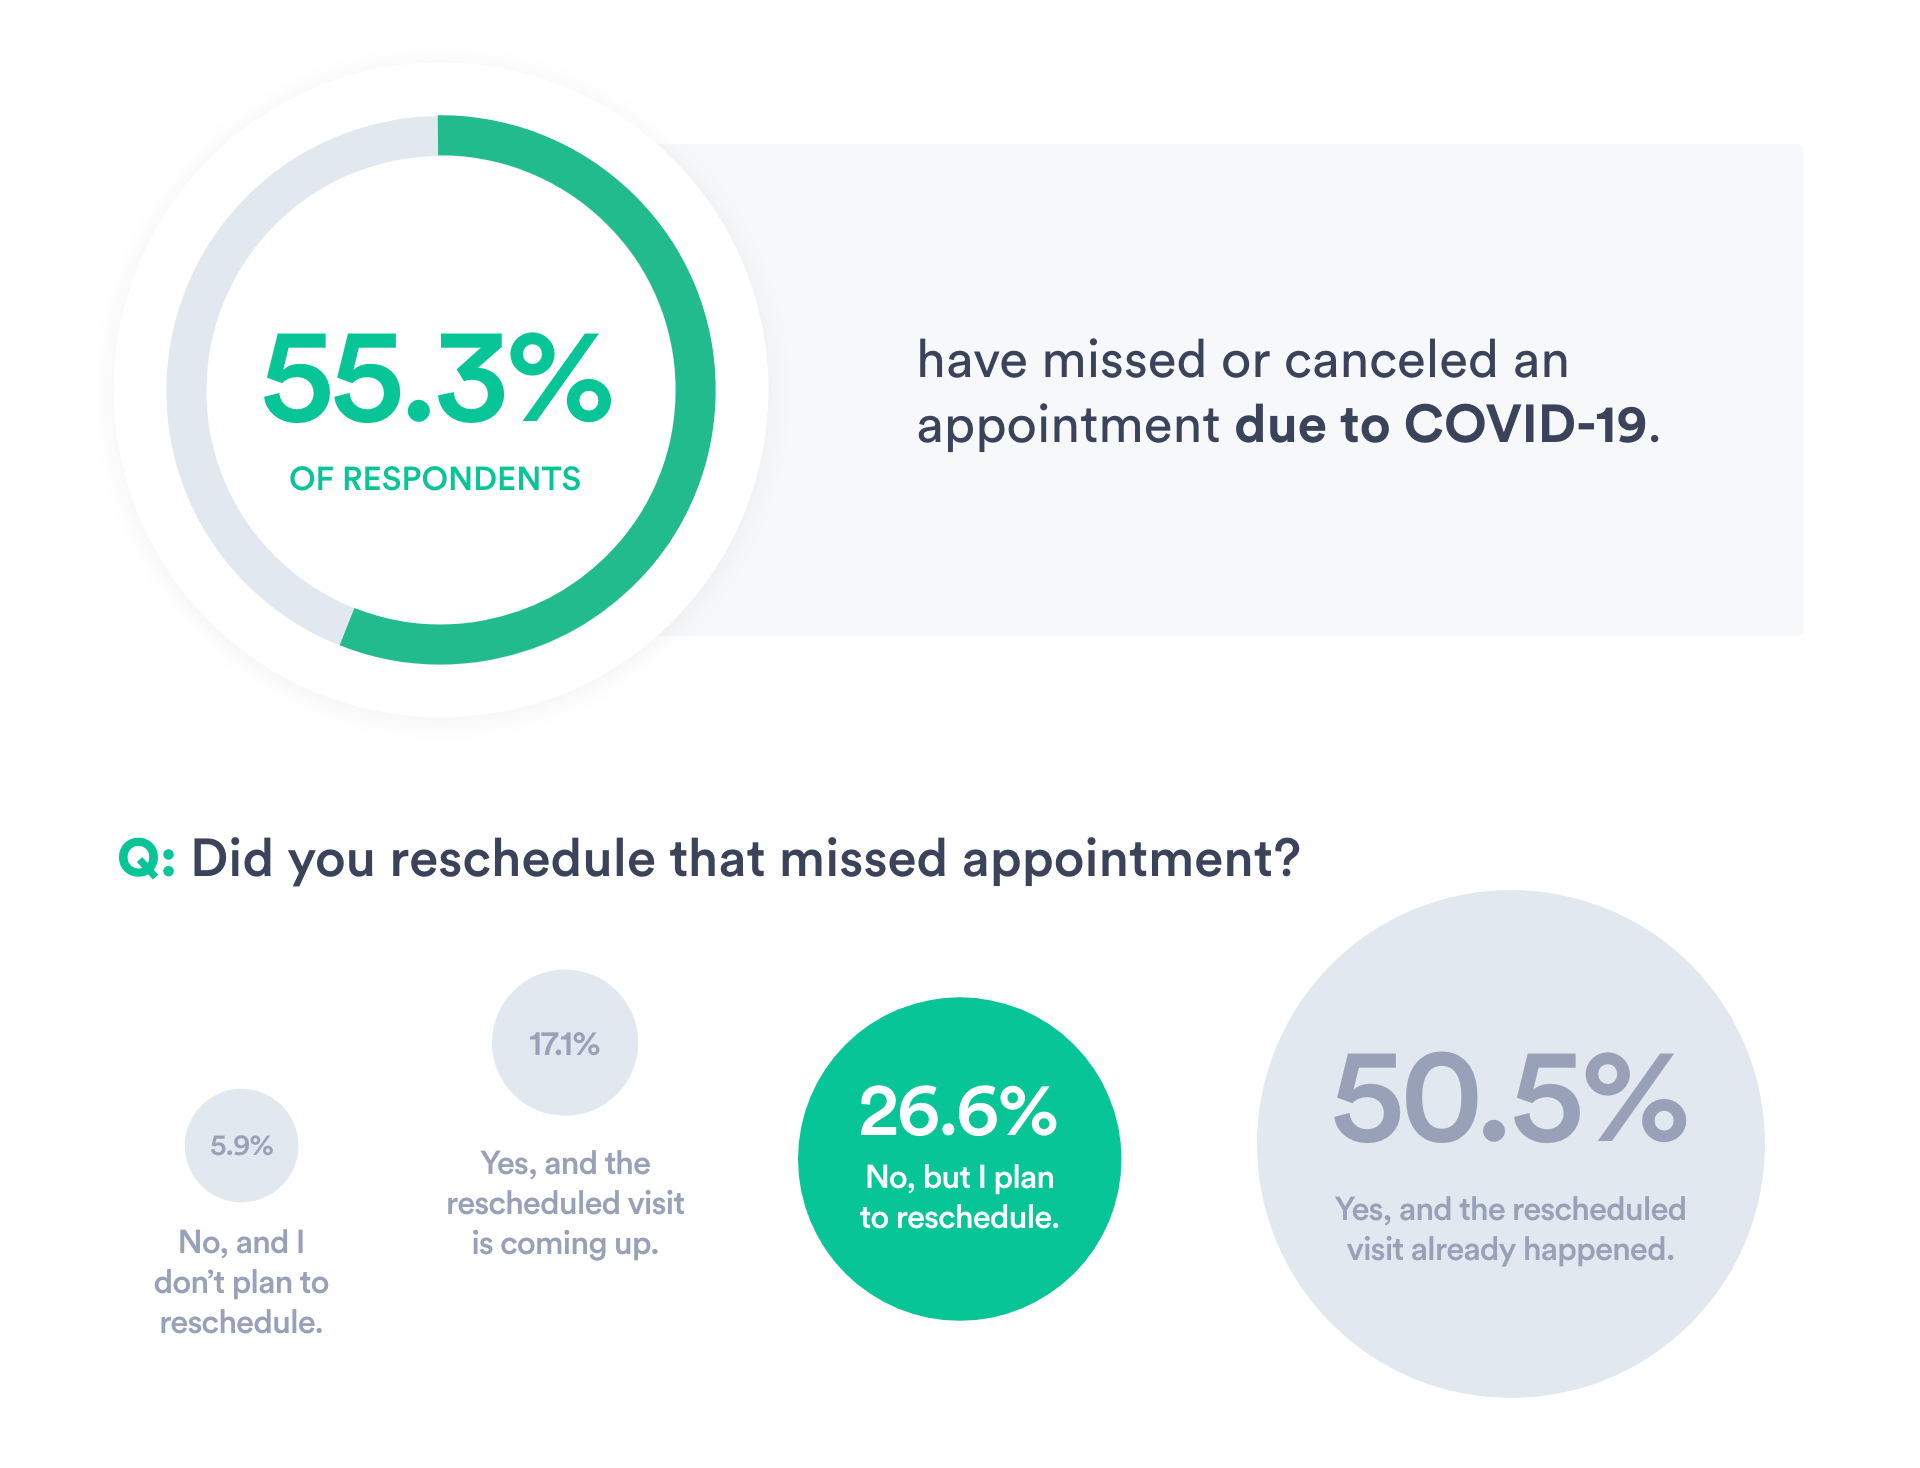 55.3 percent of respondents have missed or canceled an appointment due to COVID-19. 26.6 percent plan to reschedule.